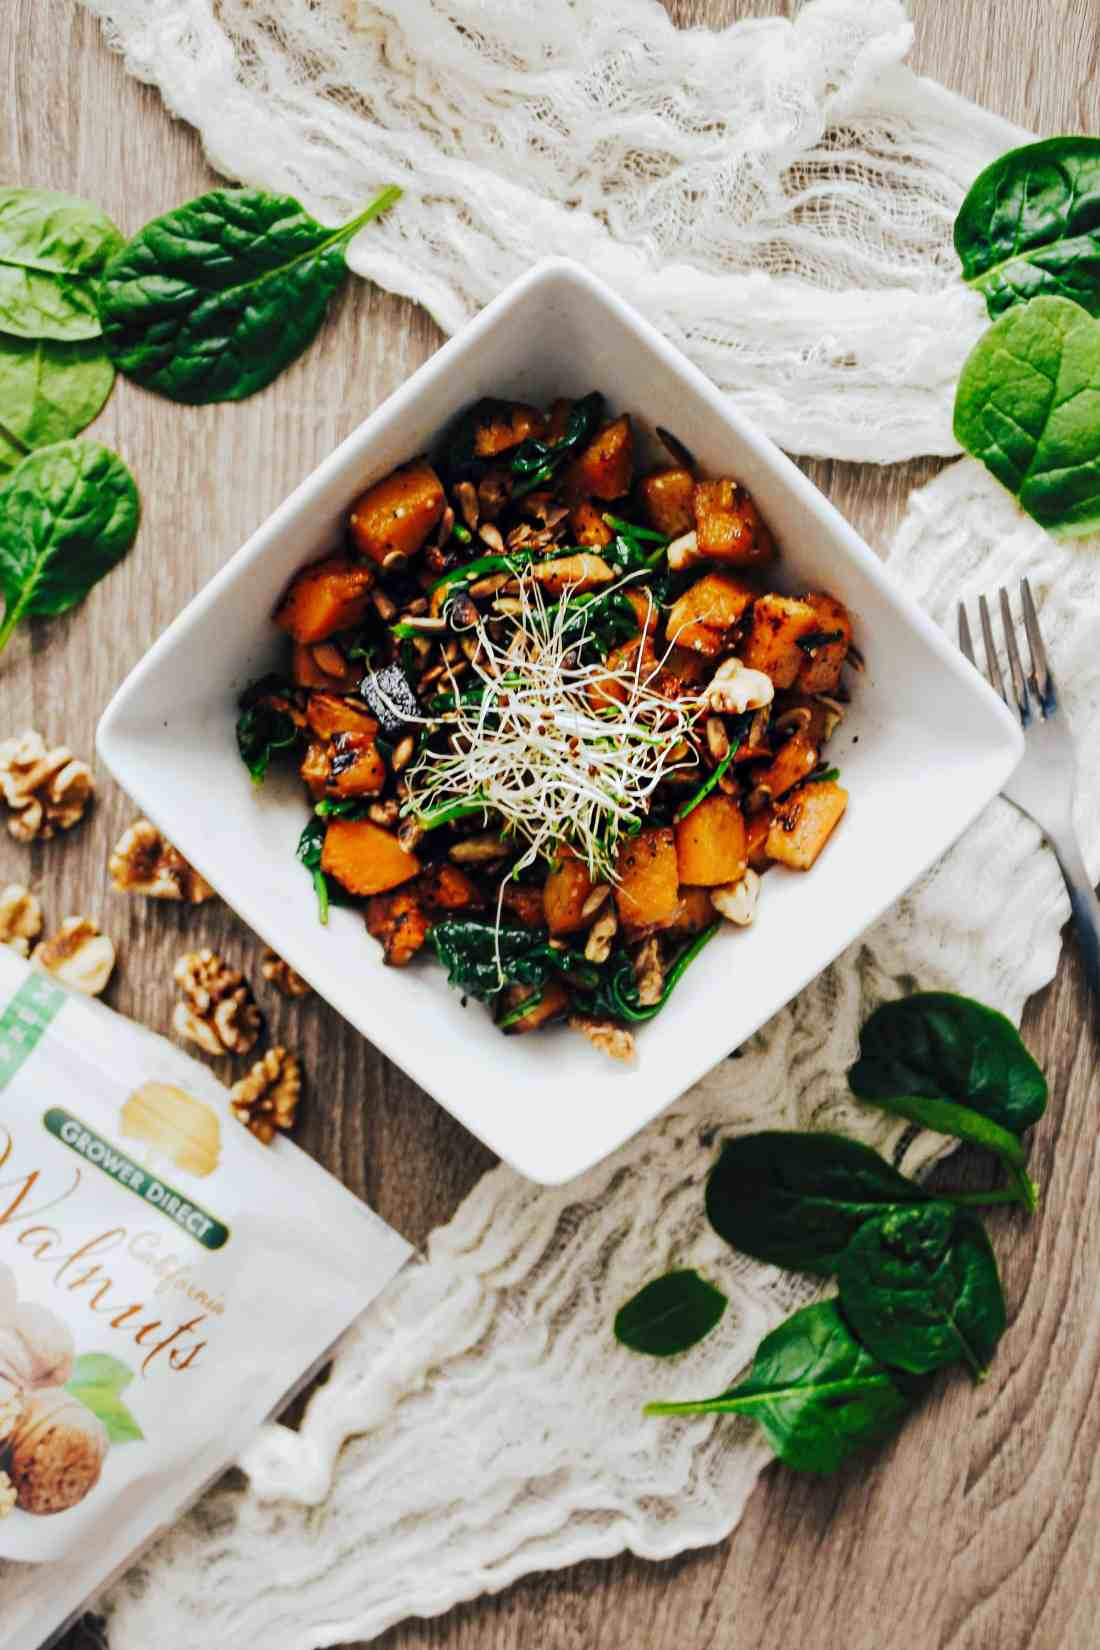 This roasted Butternut Squash & Spinach Salad with toasted walnuts & seeds makes for the perfect gluten free & plant based side dish!